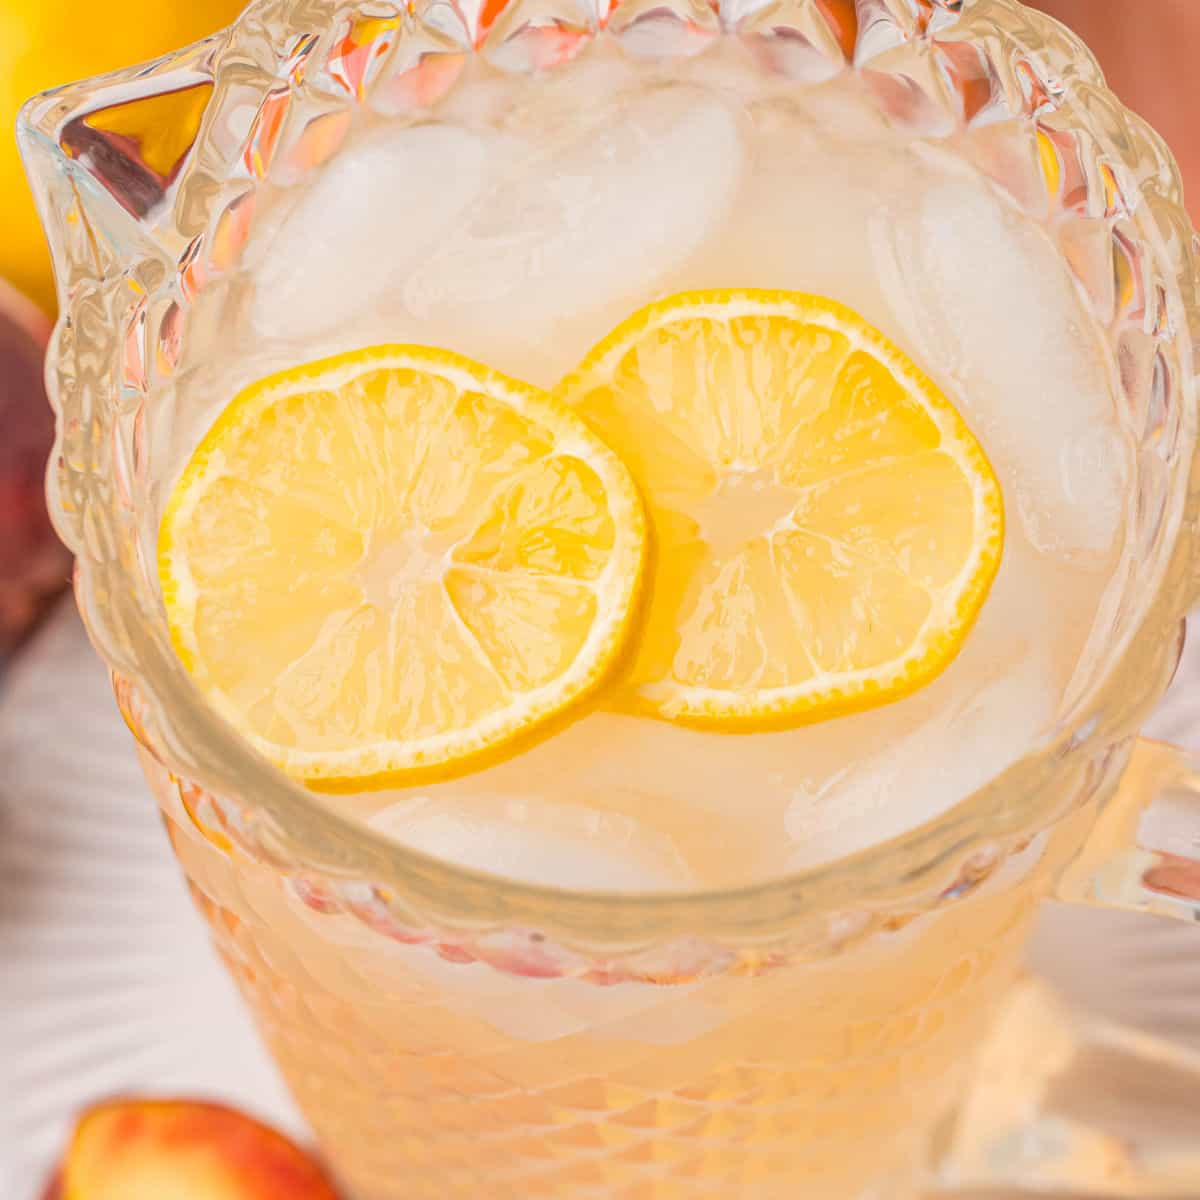 square image looking down into a pitchers of peach lemonade with lemon slices floating on top